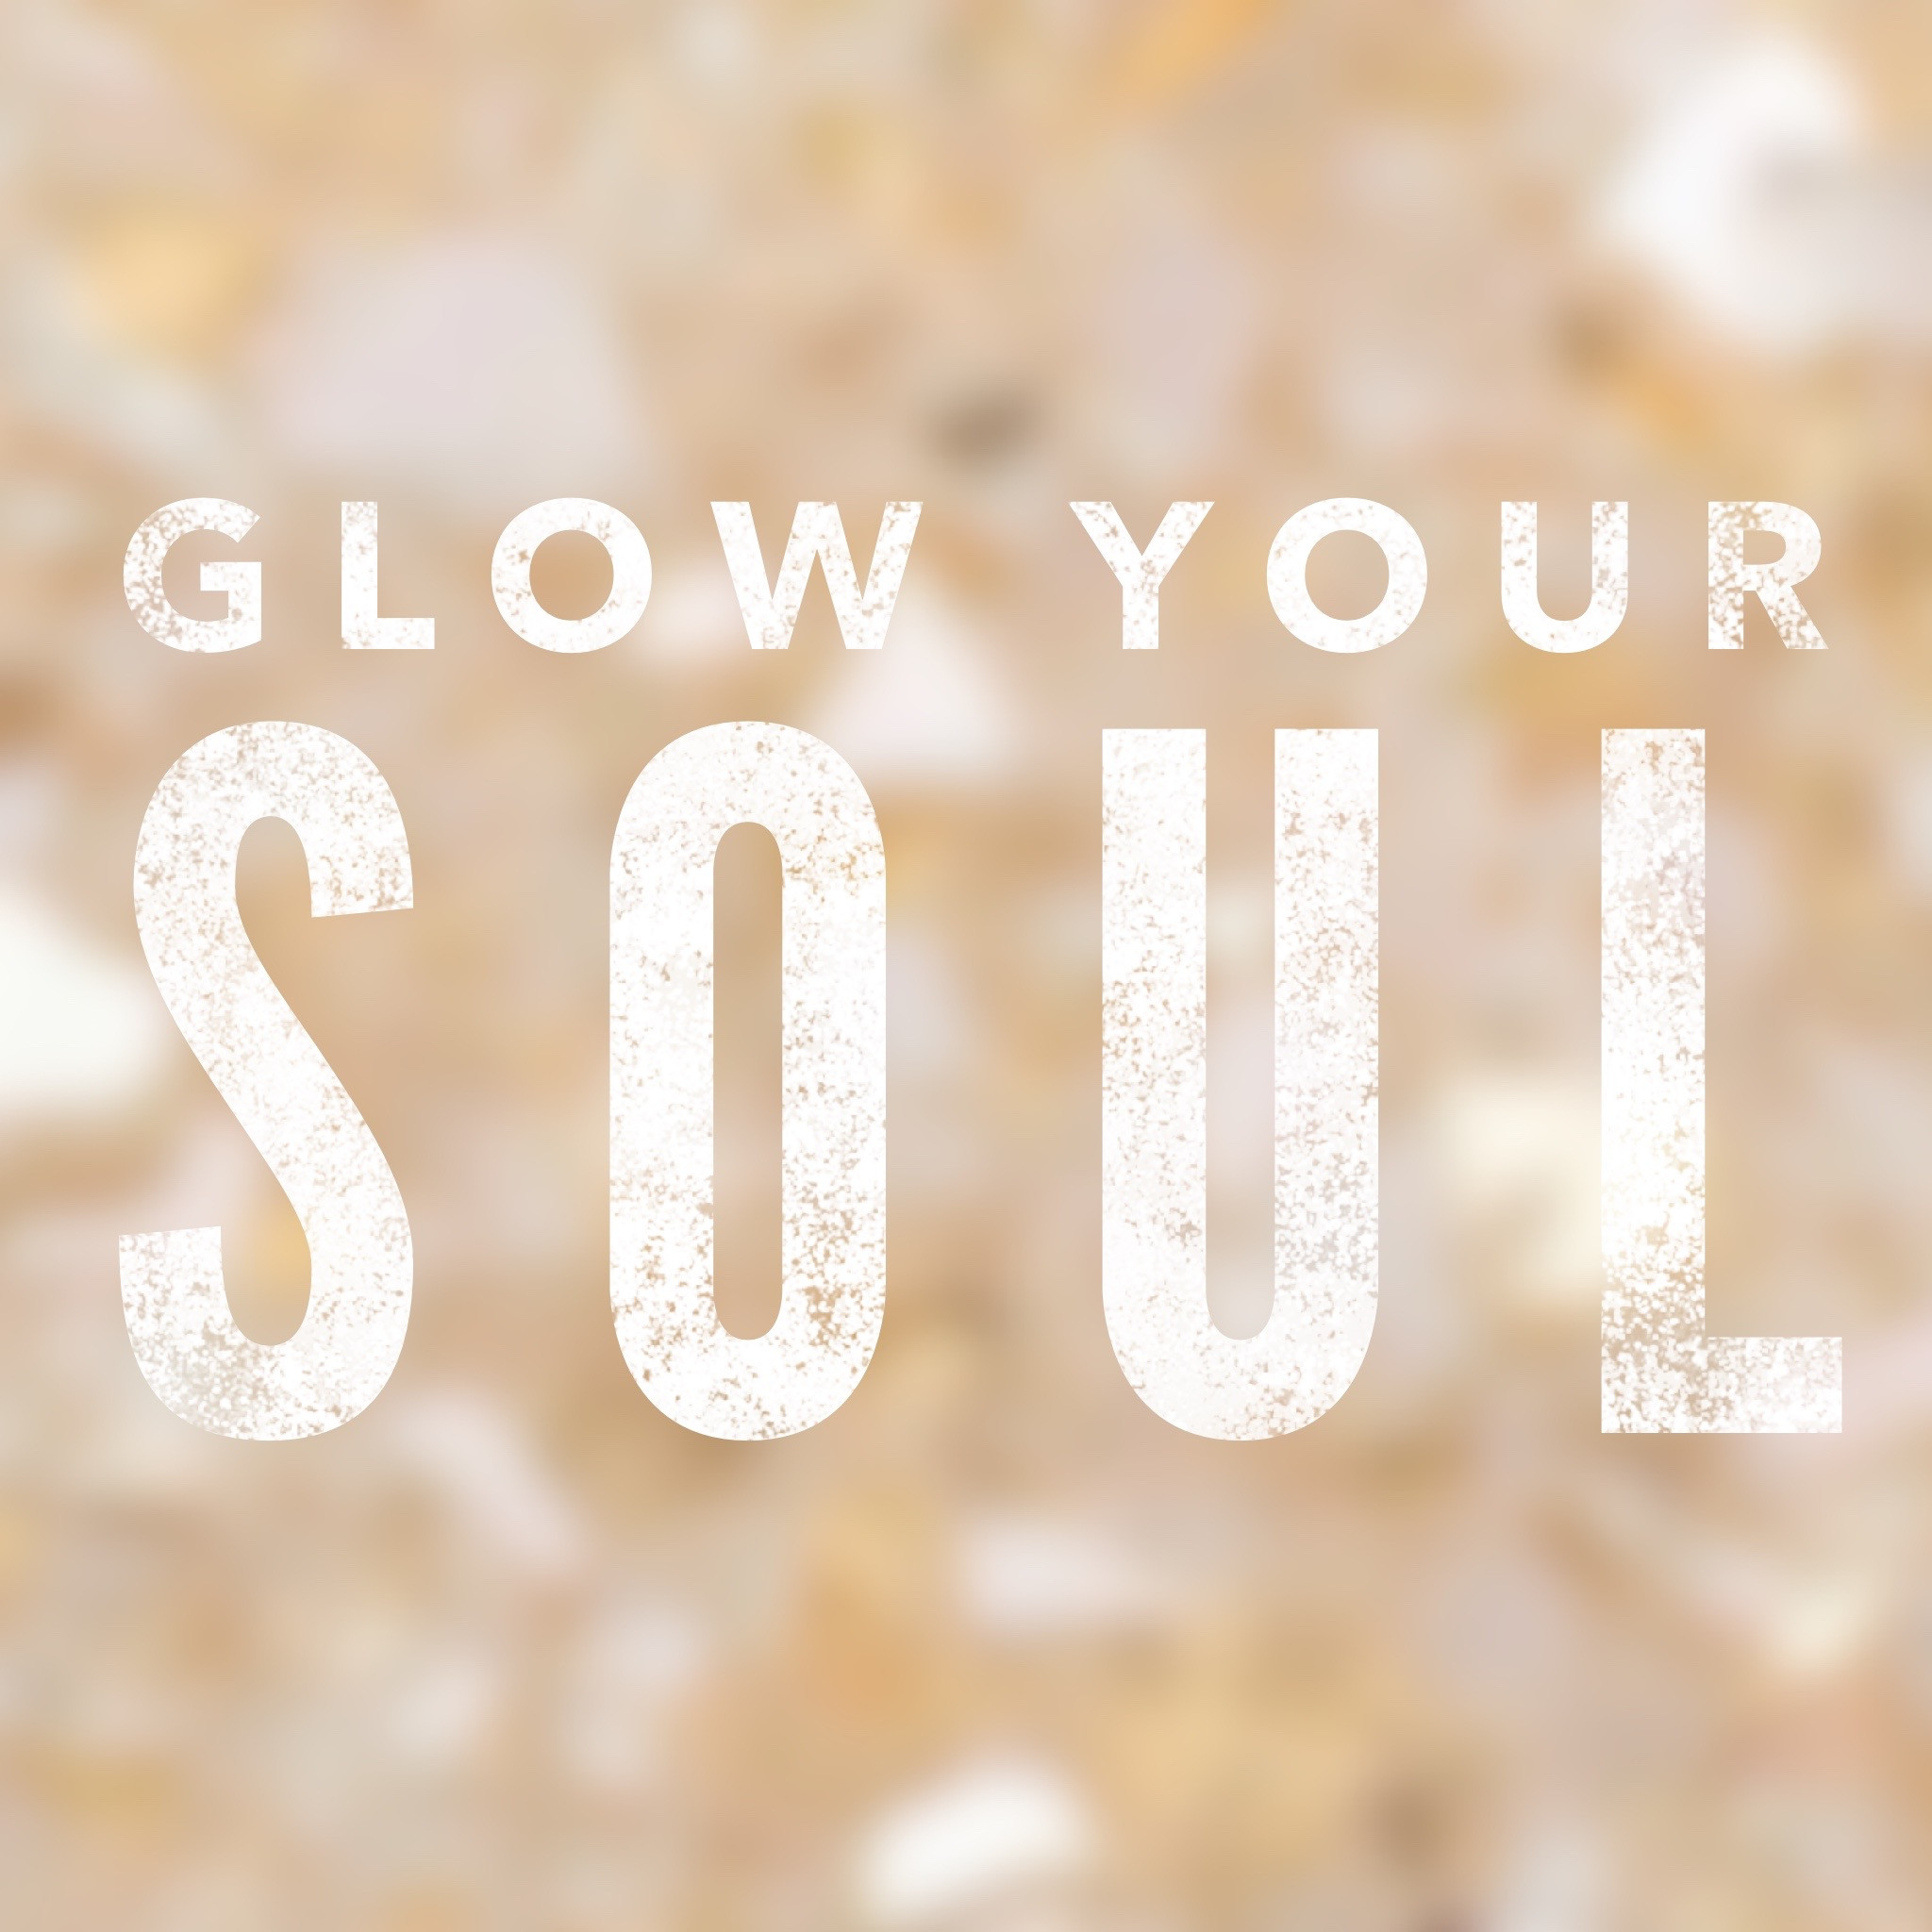 GLOW YOUR SOUL